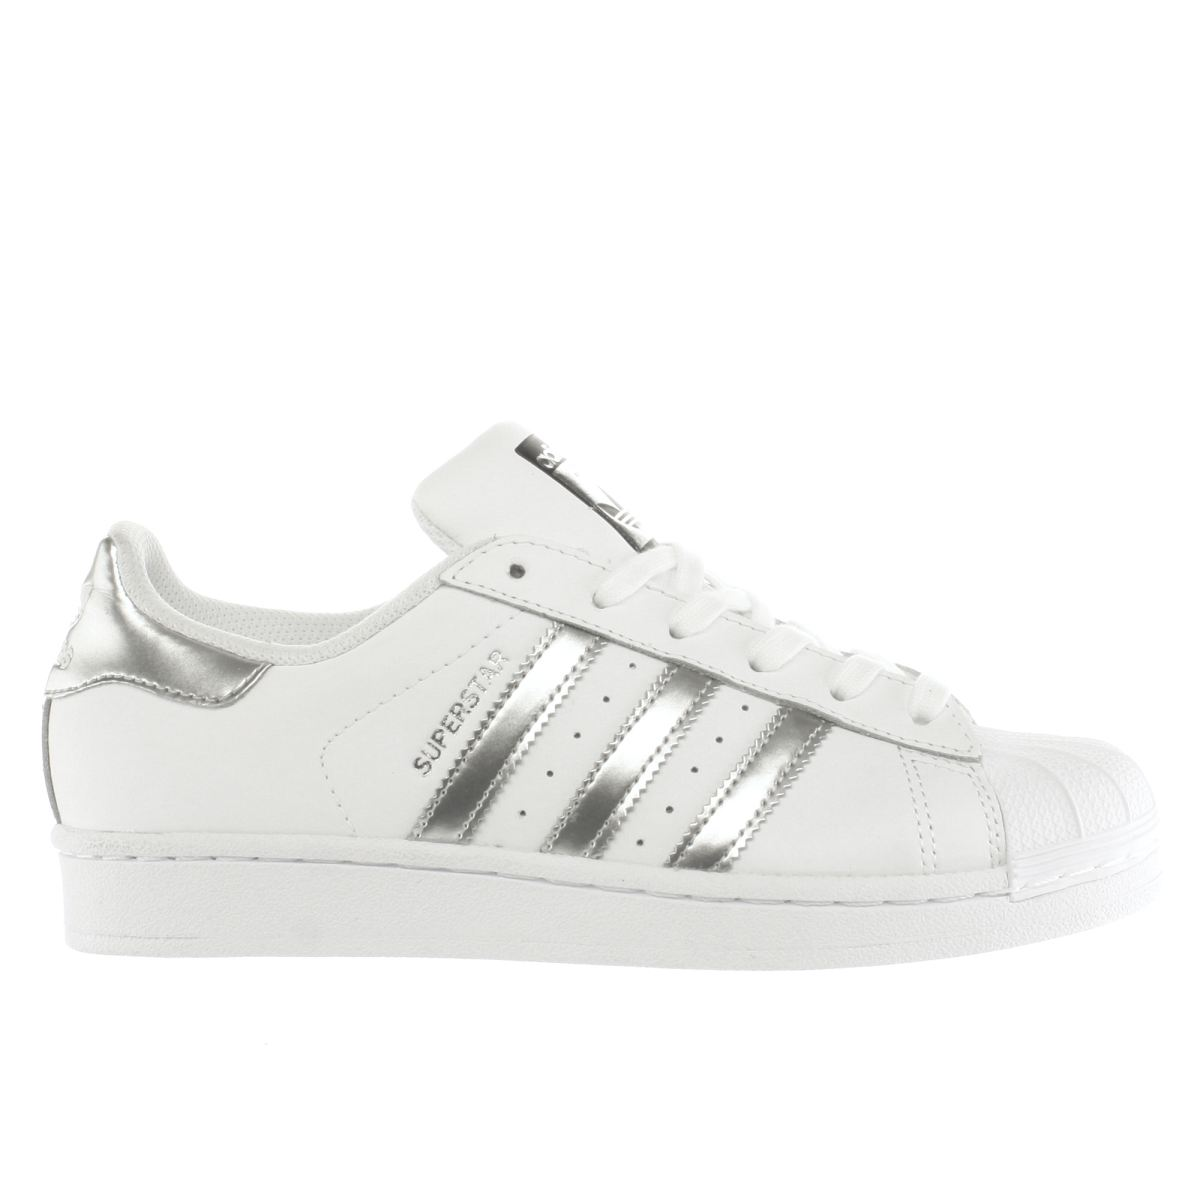 Adidas Superstar Women White Rose Gold BB1428 UK 4